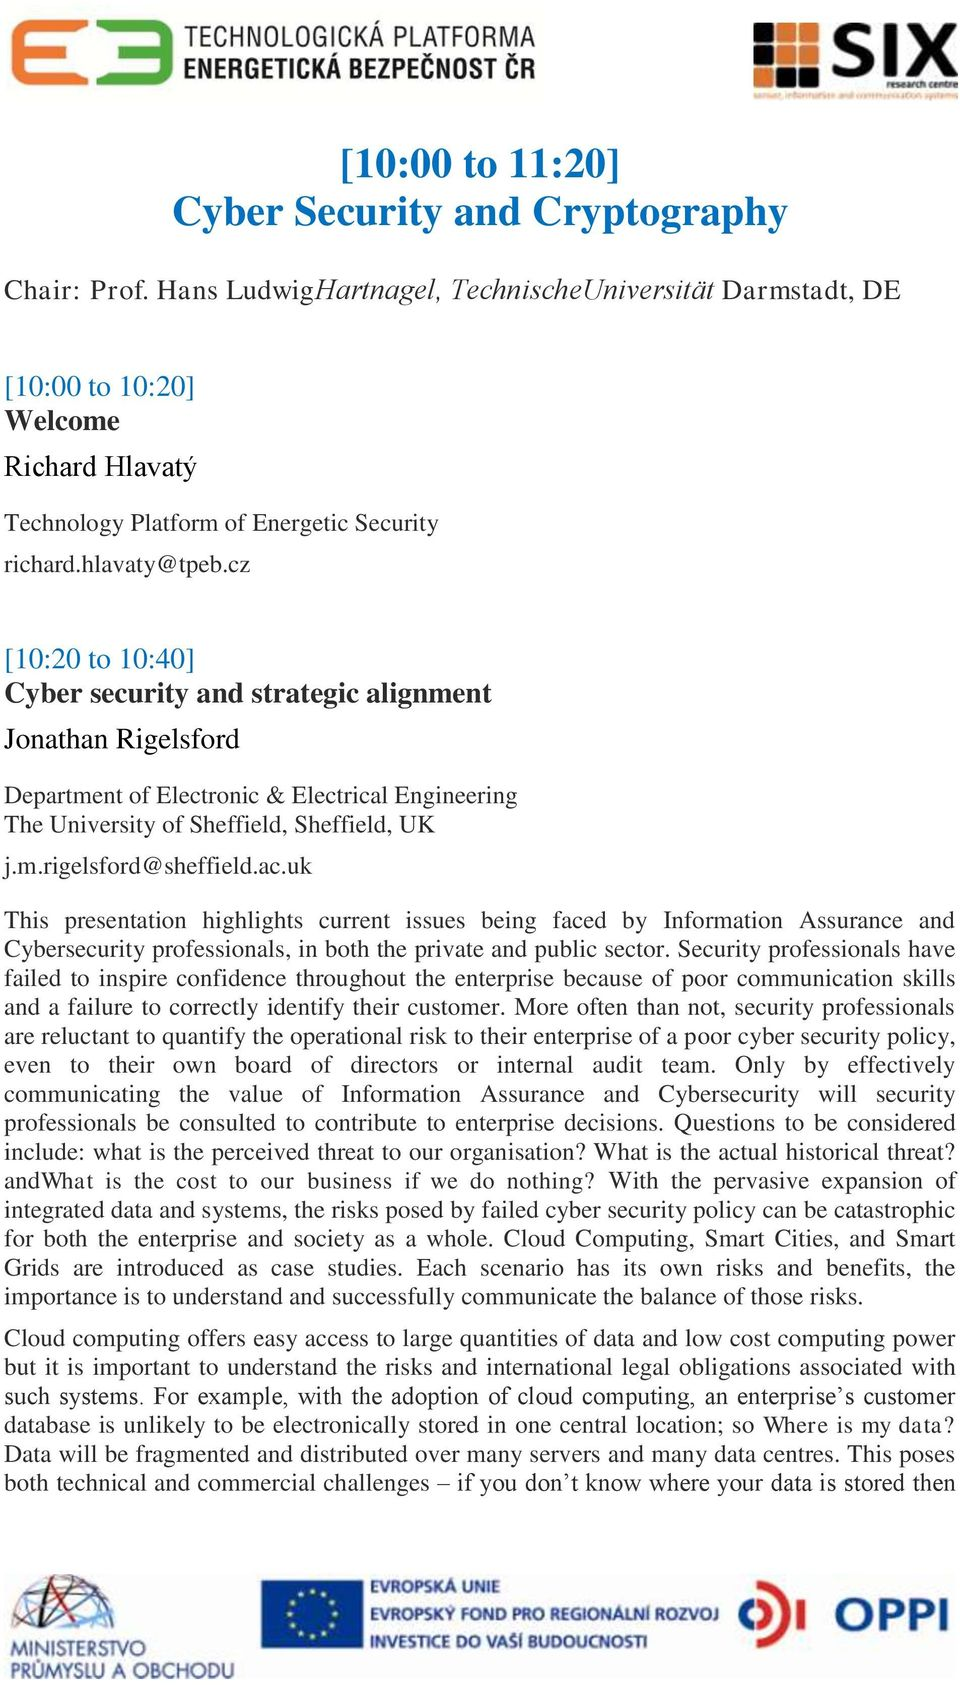 cz [10:20 to 10:40] Cyber security and strategic alignment Jonathan Rigelsford Department of Electronic & Electrical Engineering The University of Sheffield, Sheffield, UK j.m.rigelsford@sheffield.ac.